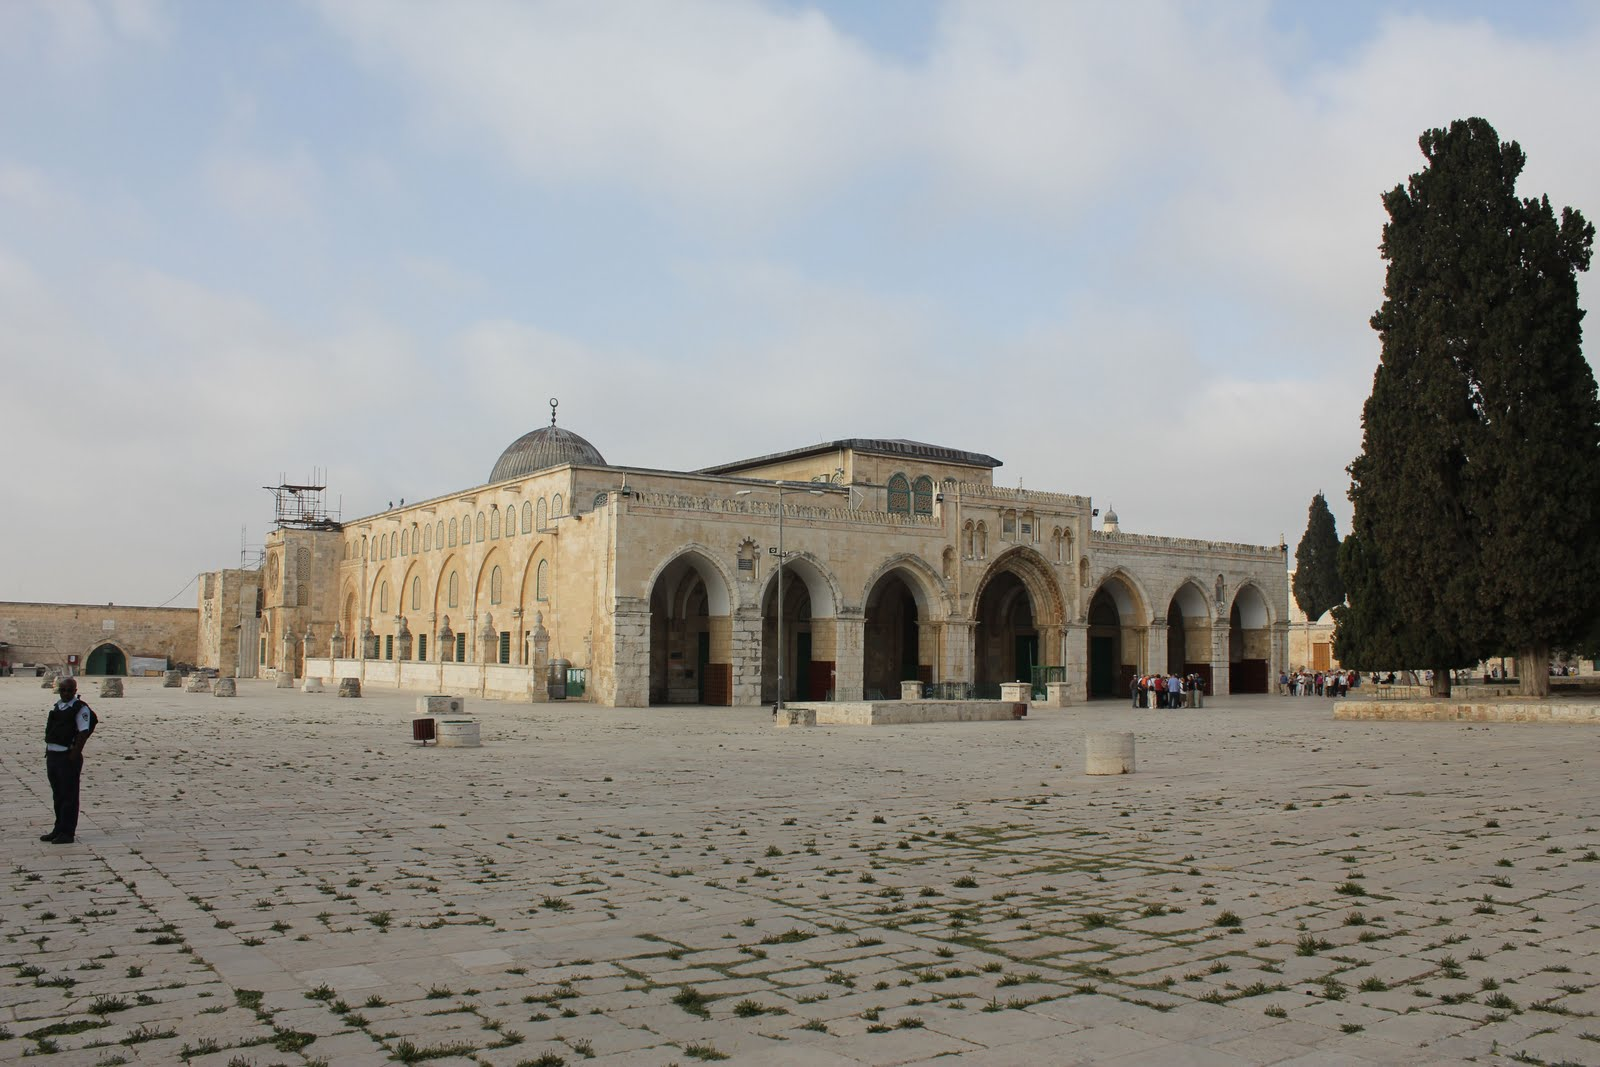 the function and appearance of the dome in the rock Although the monument's intended function continues to be debated, the dome  of the rock has historically functioned—and continues to.